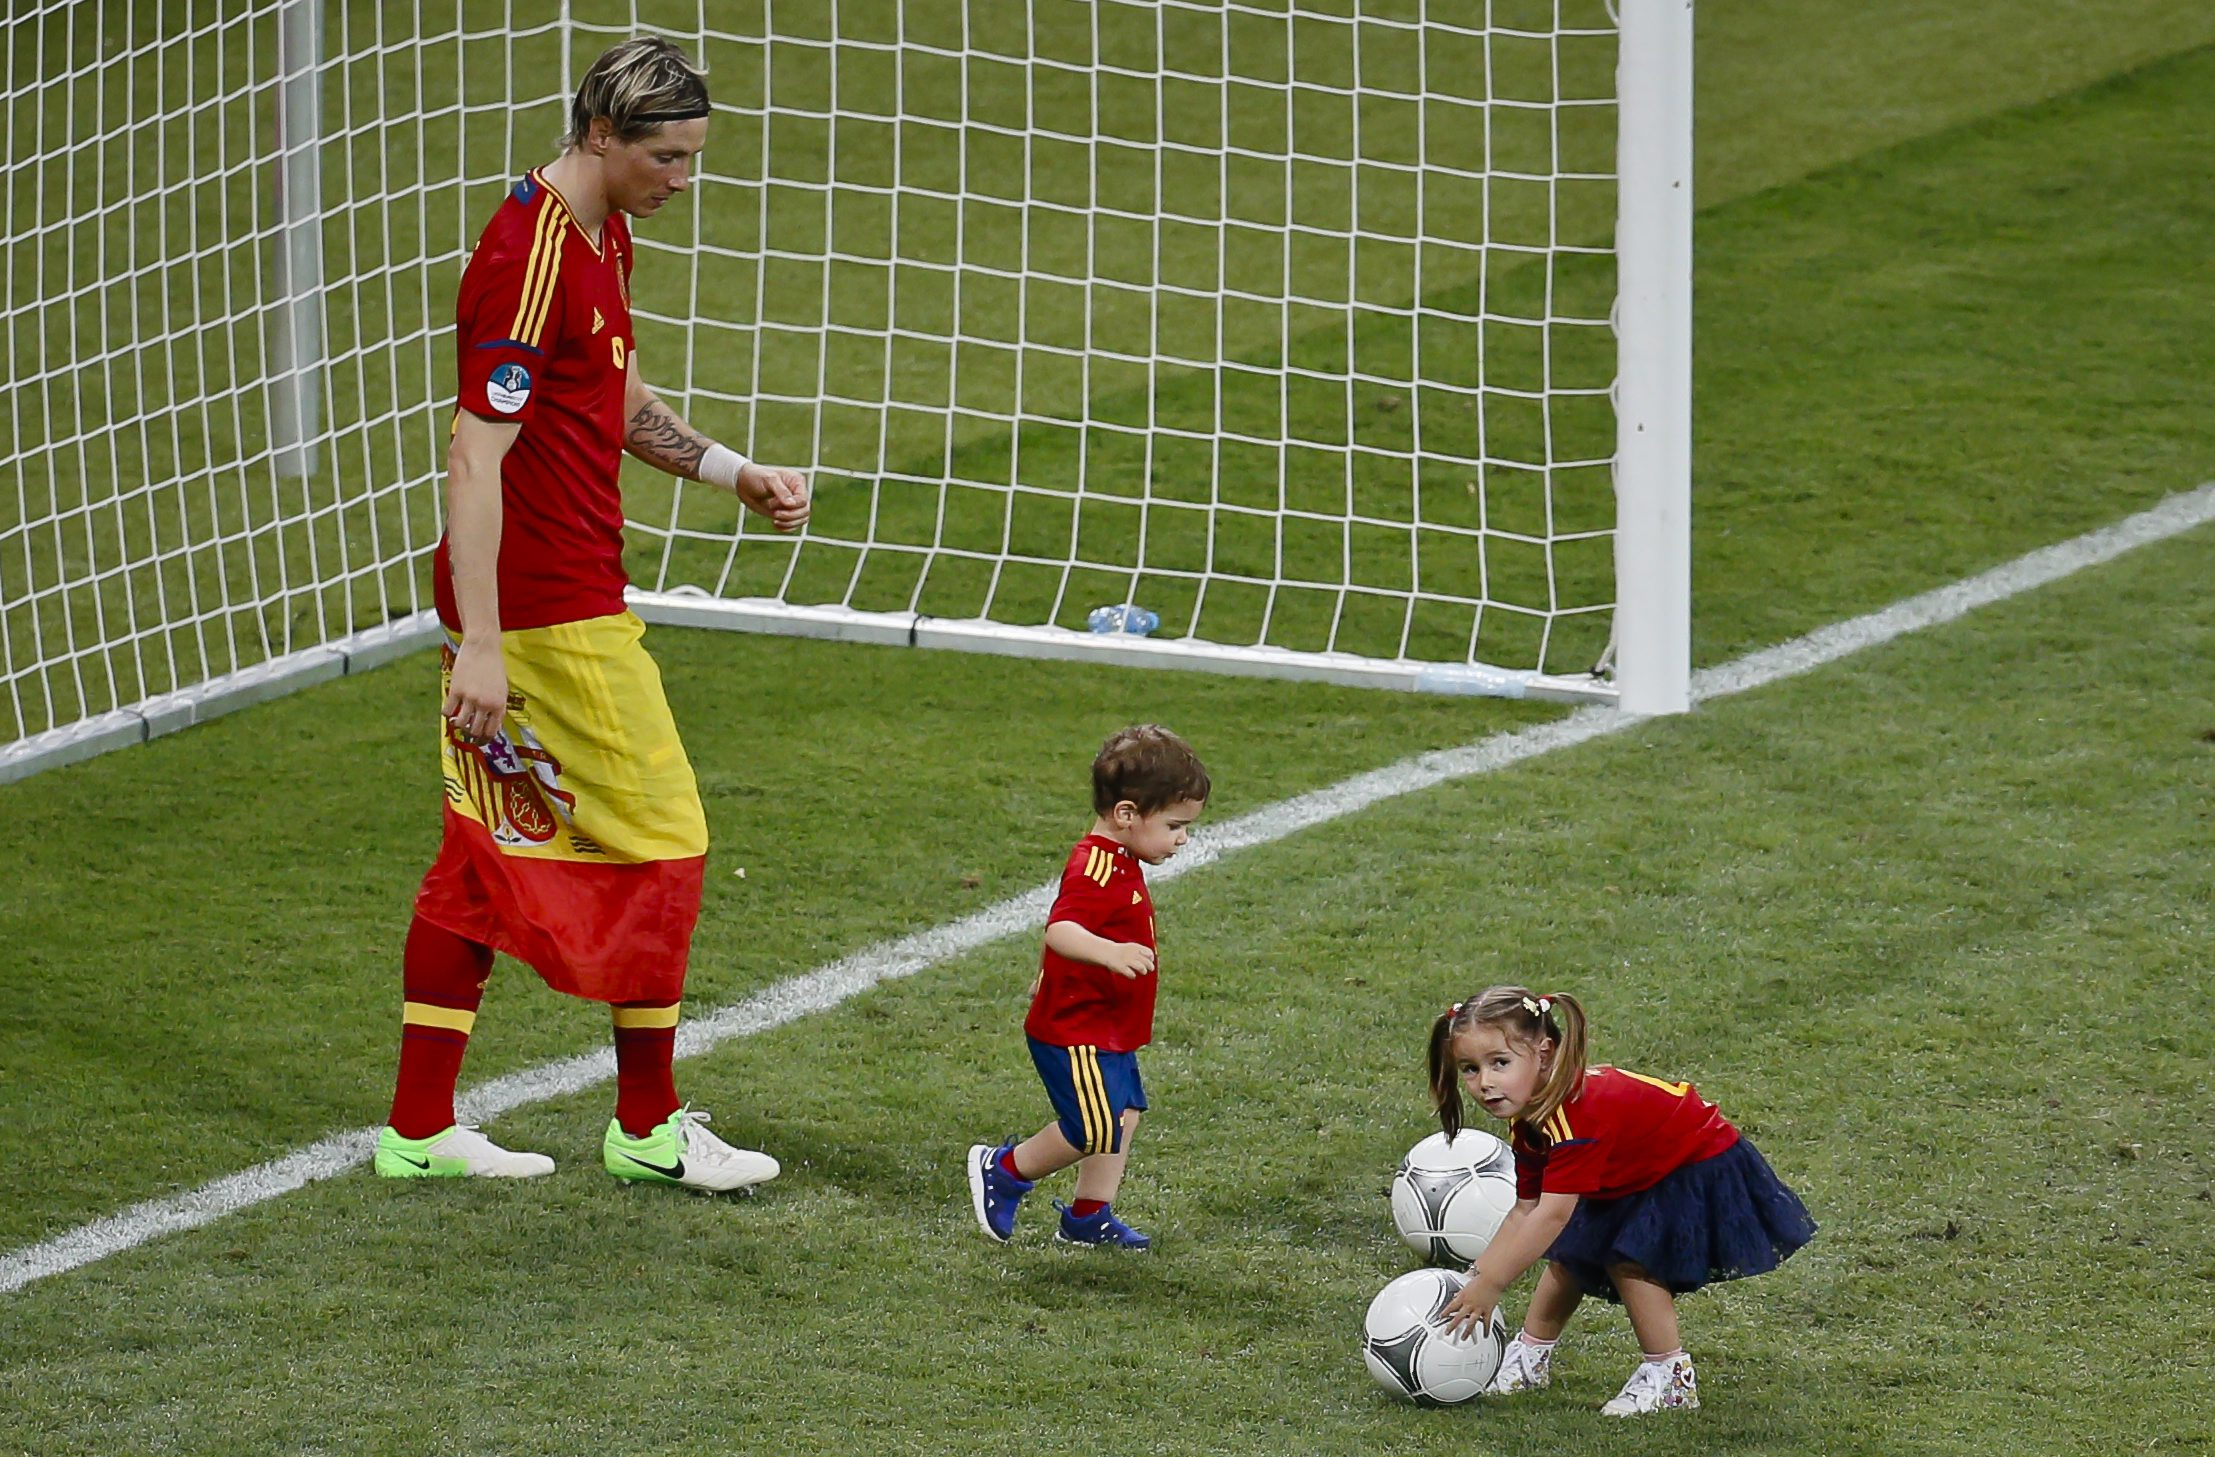 Spain's Fernando Torres, left, plays with his son Leo, center, and daughter Nora, right, after an award ceremony as Spain won the Euro 2012 soccer championship final between Spain and Italy in Kiev, Ukraine, early Monday, July 2, 2012. (AP Photo/Vadim Ghirda)